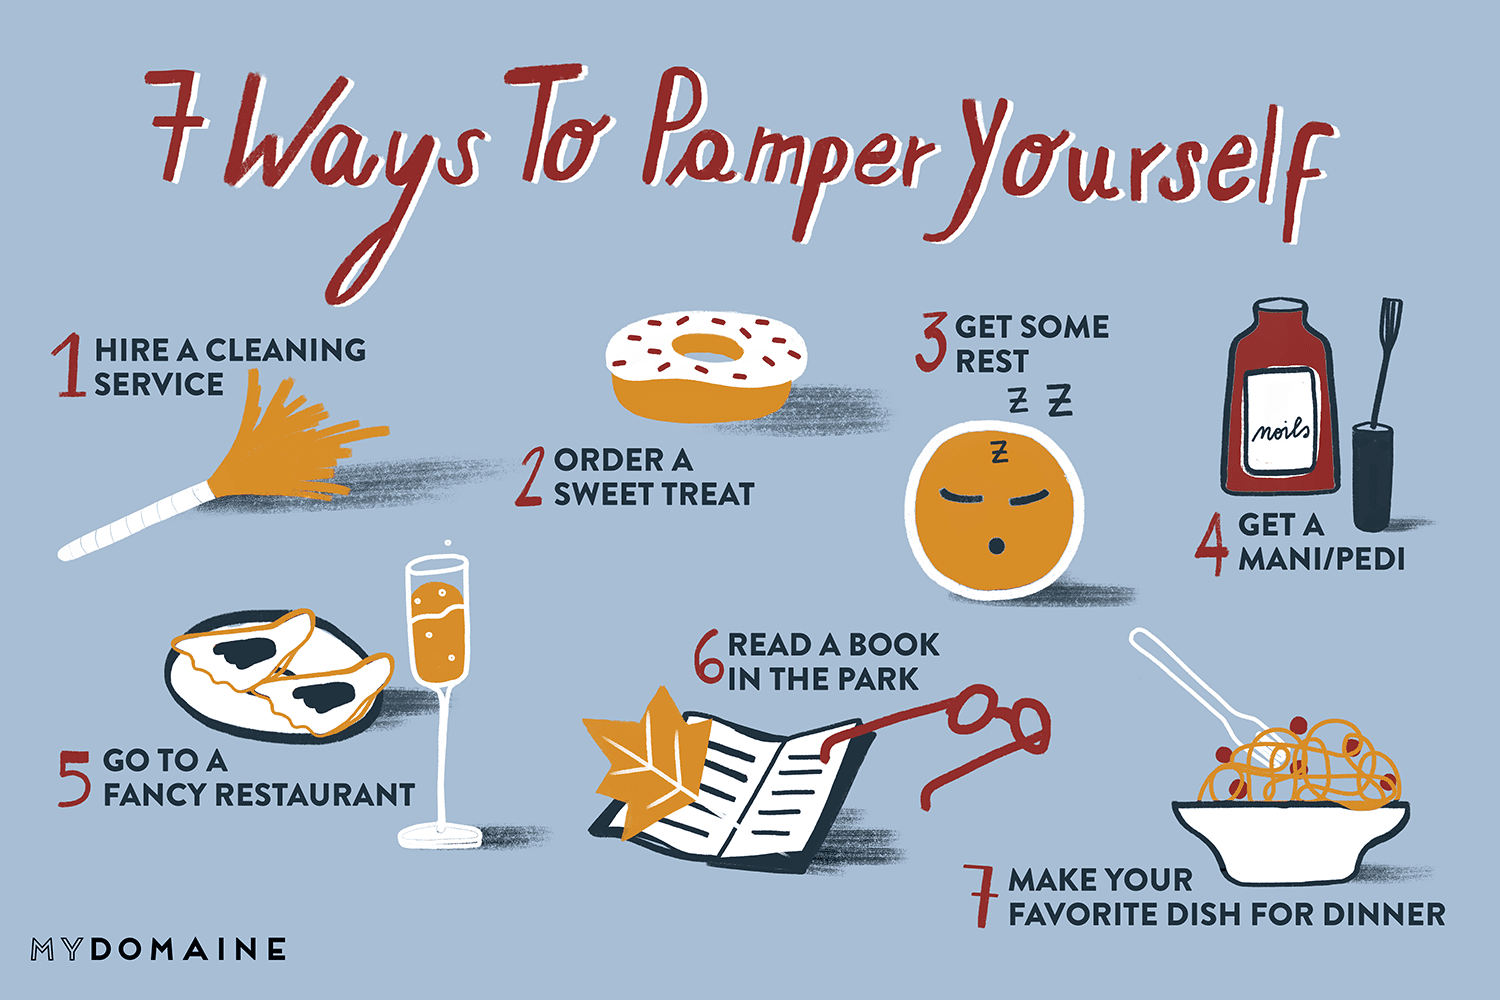 34 Awesome Ways to Pamper Yourself